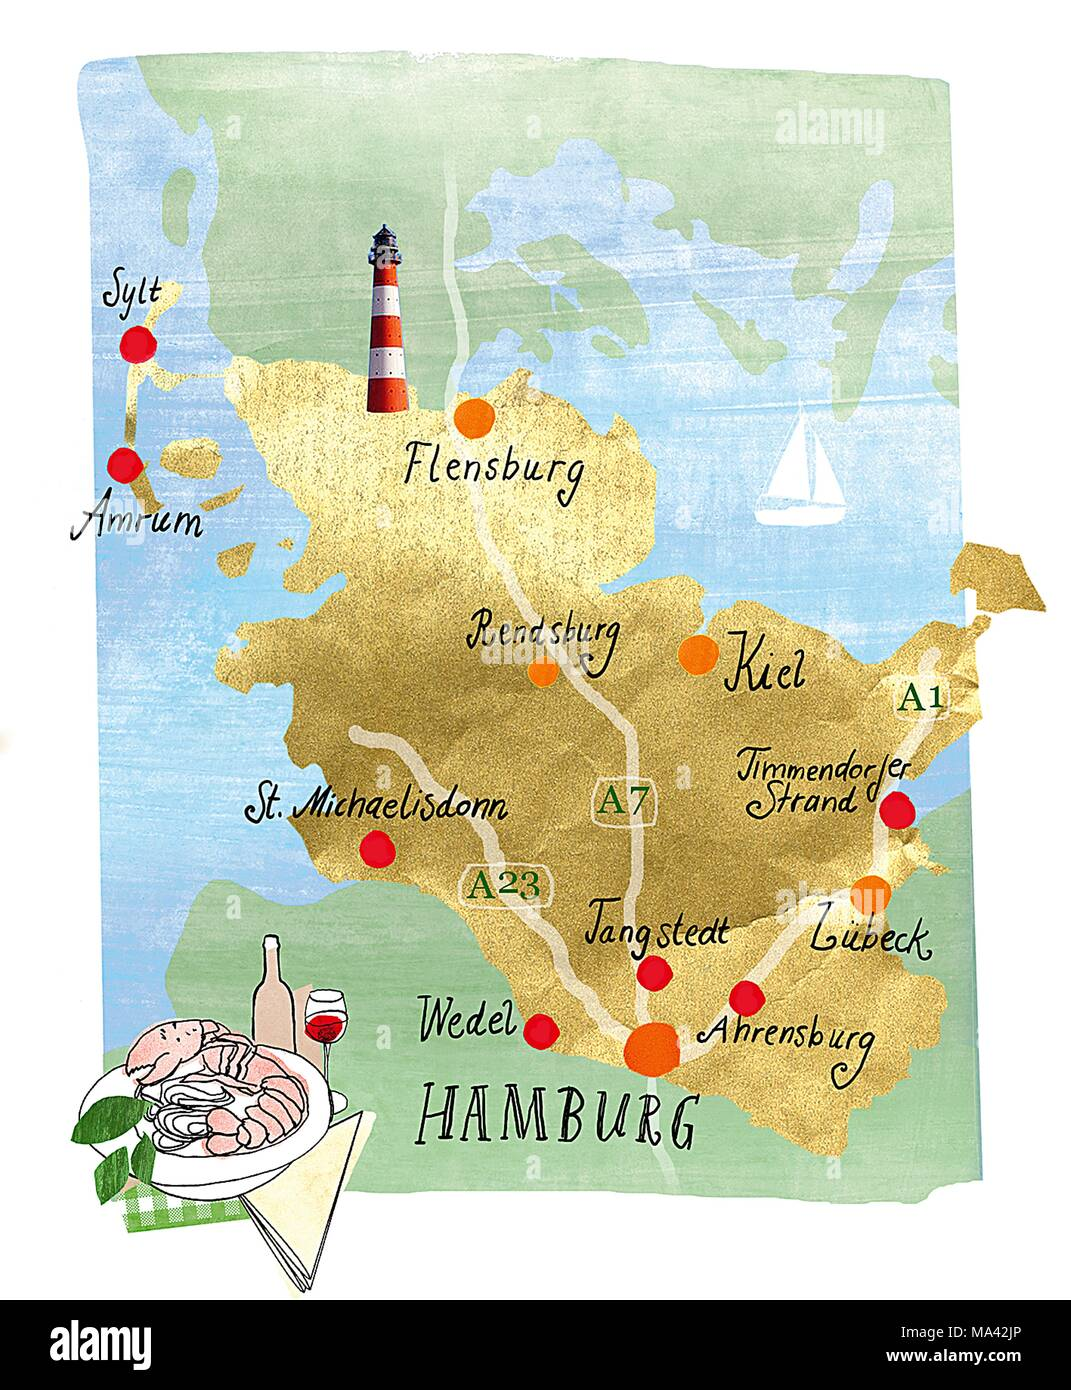 A hand-drawn map of Hamburg and the local region in Northern Germany - Stock Image